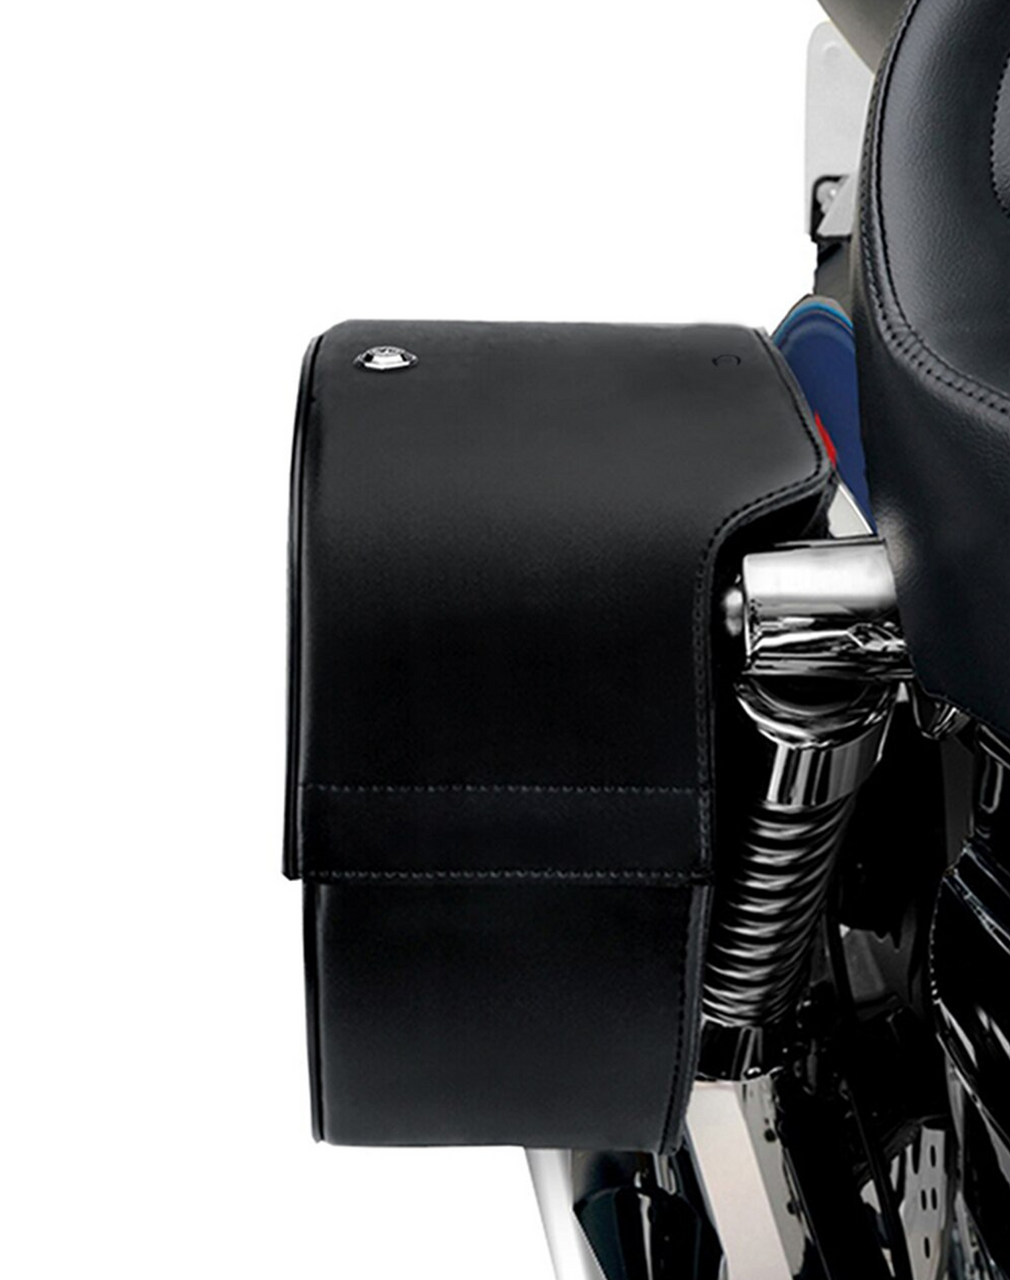 Viking Charger Side Pocket With Shock Cutout Motorcycle Saddlebags For Harley Sportster Iron 1200 Shock Cutout View